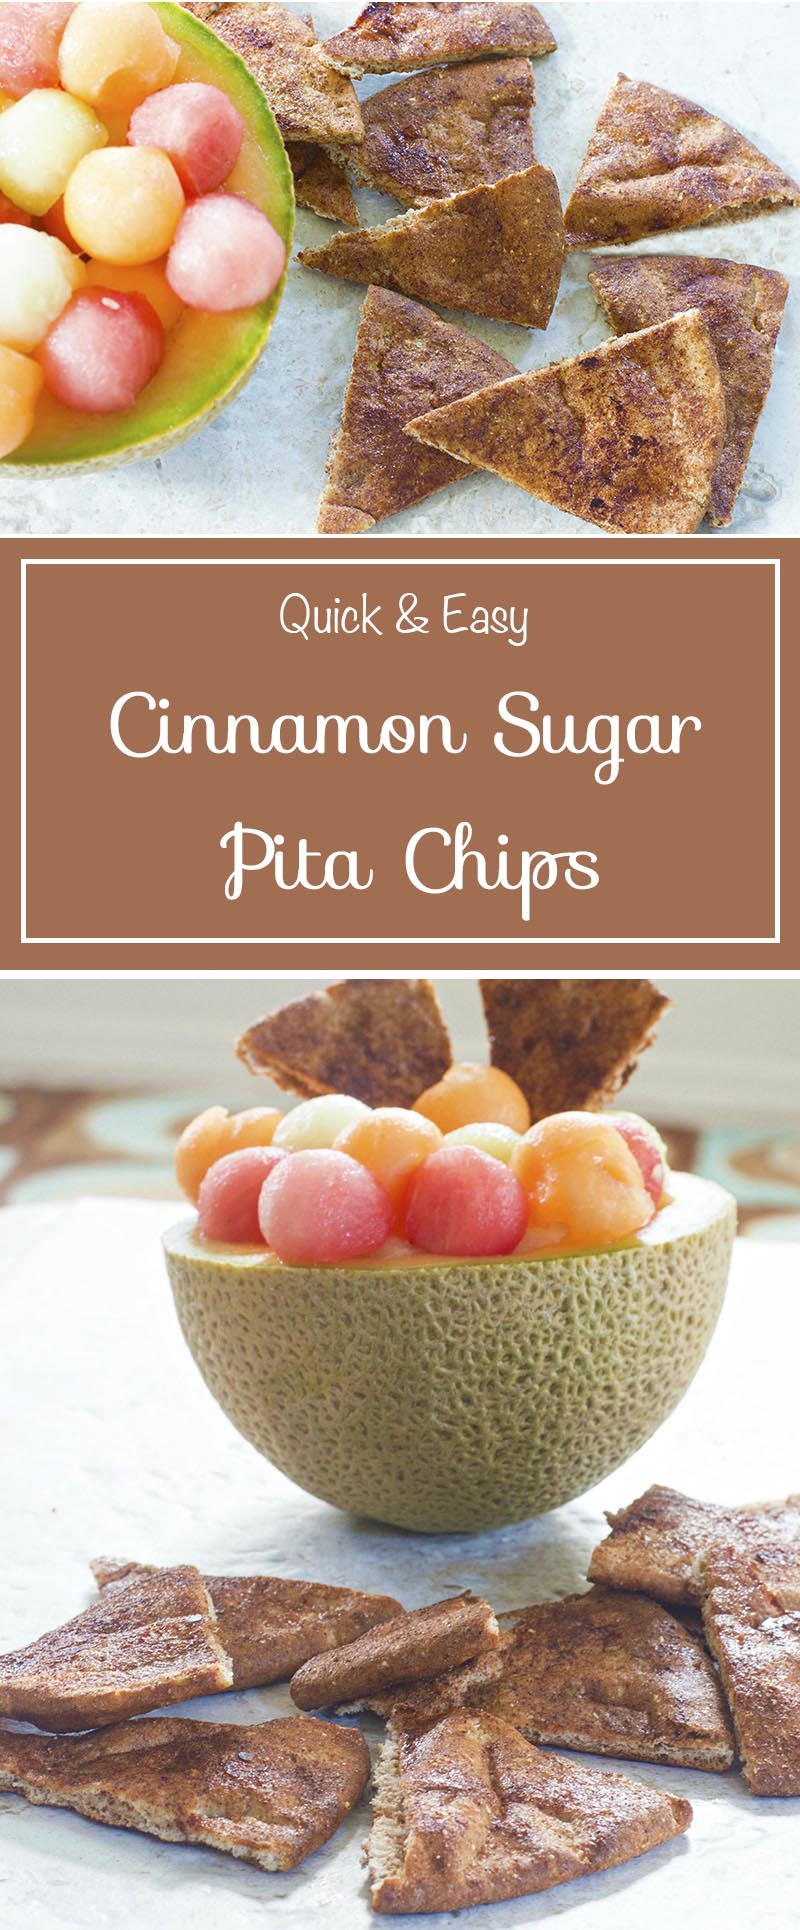 4 ingredients. Baked cinnamon sugar pita chips are a quick and easy snack. Serve with dip for game day parties or eat as simple lunch served with fruit salsa